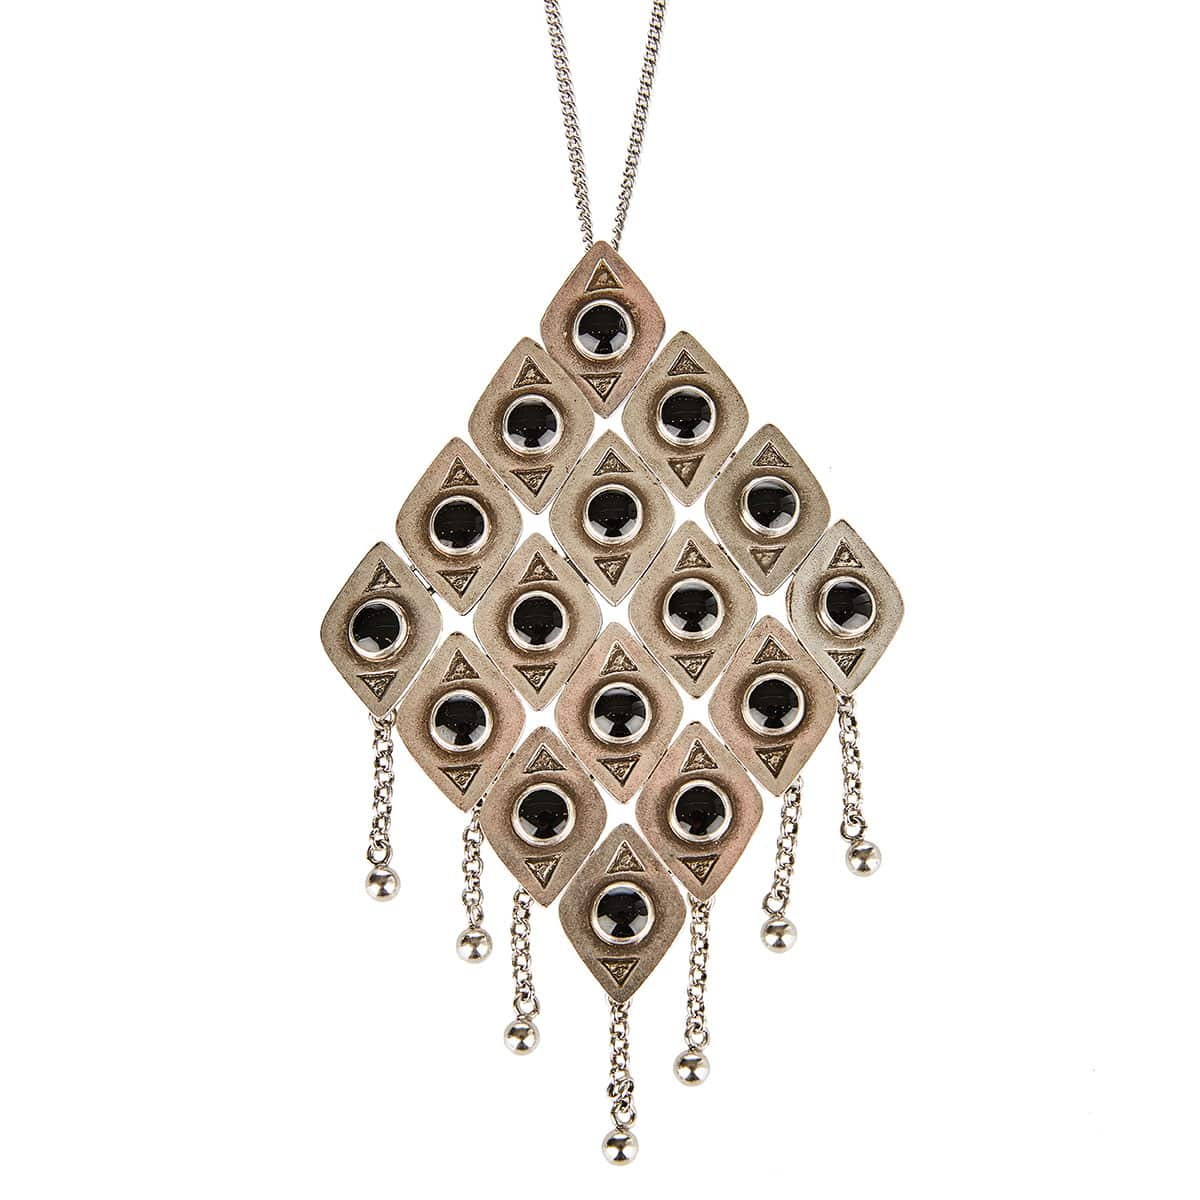 Marrakech checkered pendant necklace